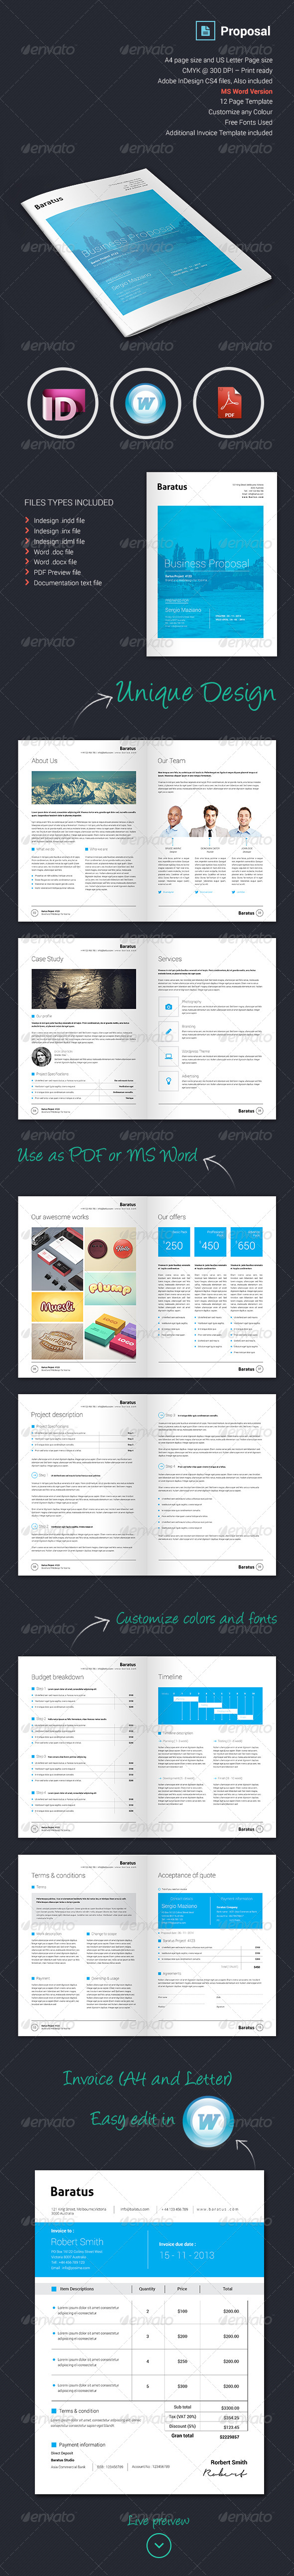 GraphicRiver Baratus Proposal & Invoice Template 6066320